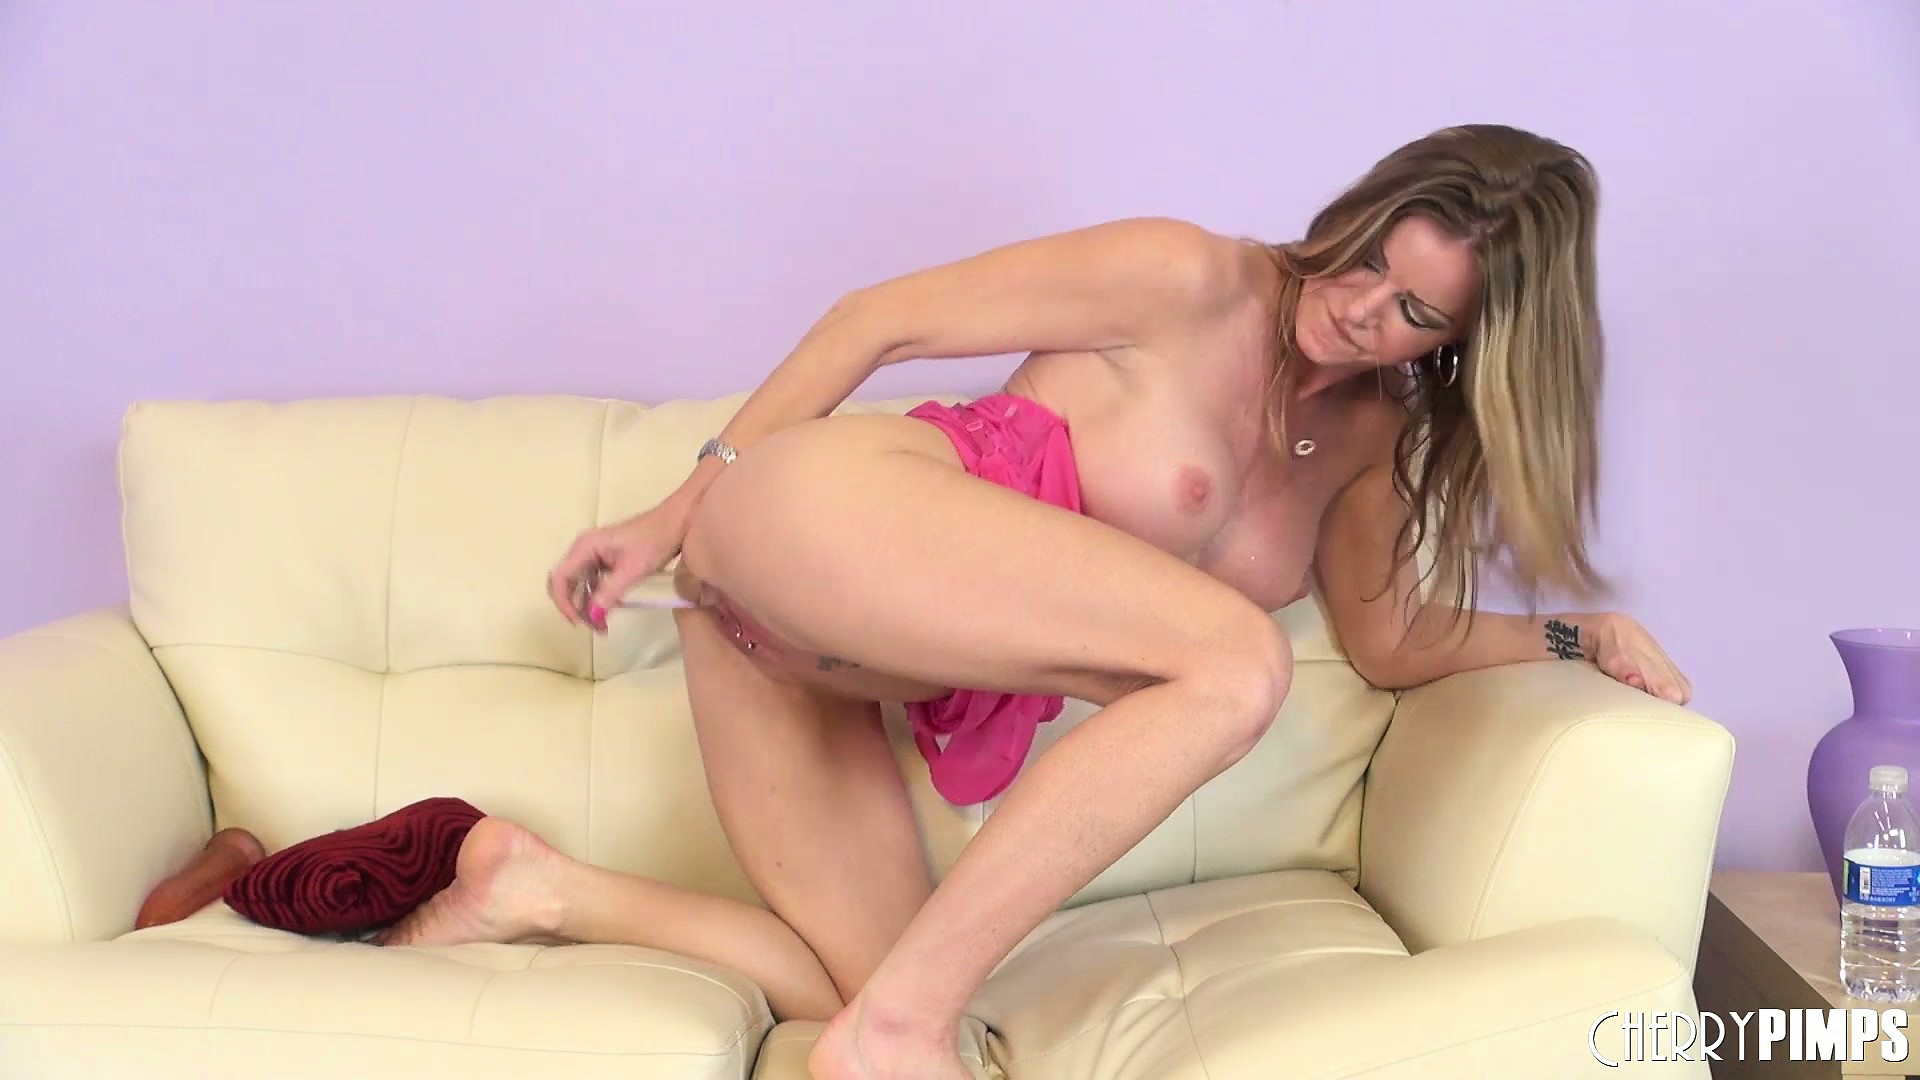 Porn Tube of Amber Fingers Her Clit And Then Sticks Her Dildo In Her Wet Cunt